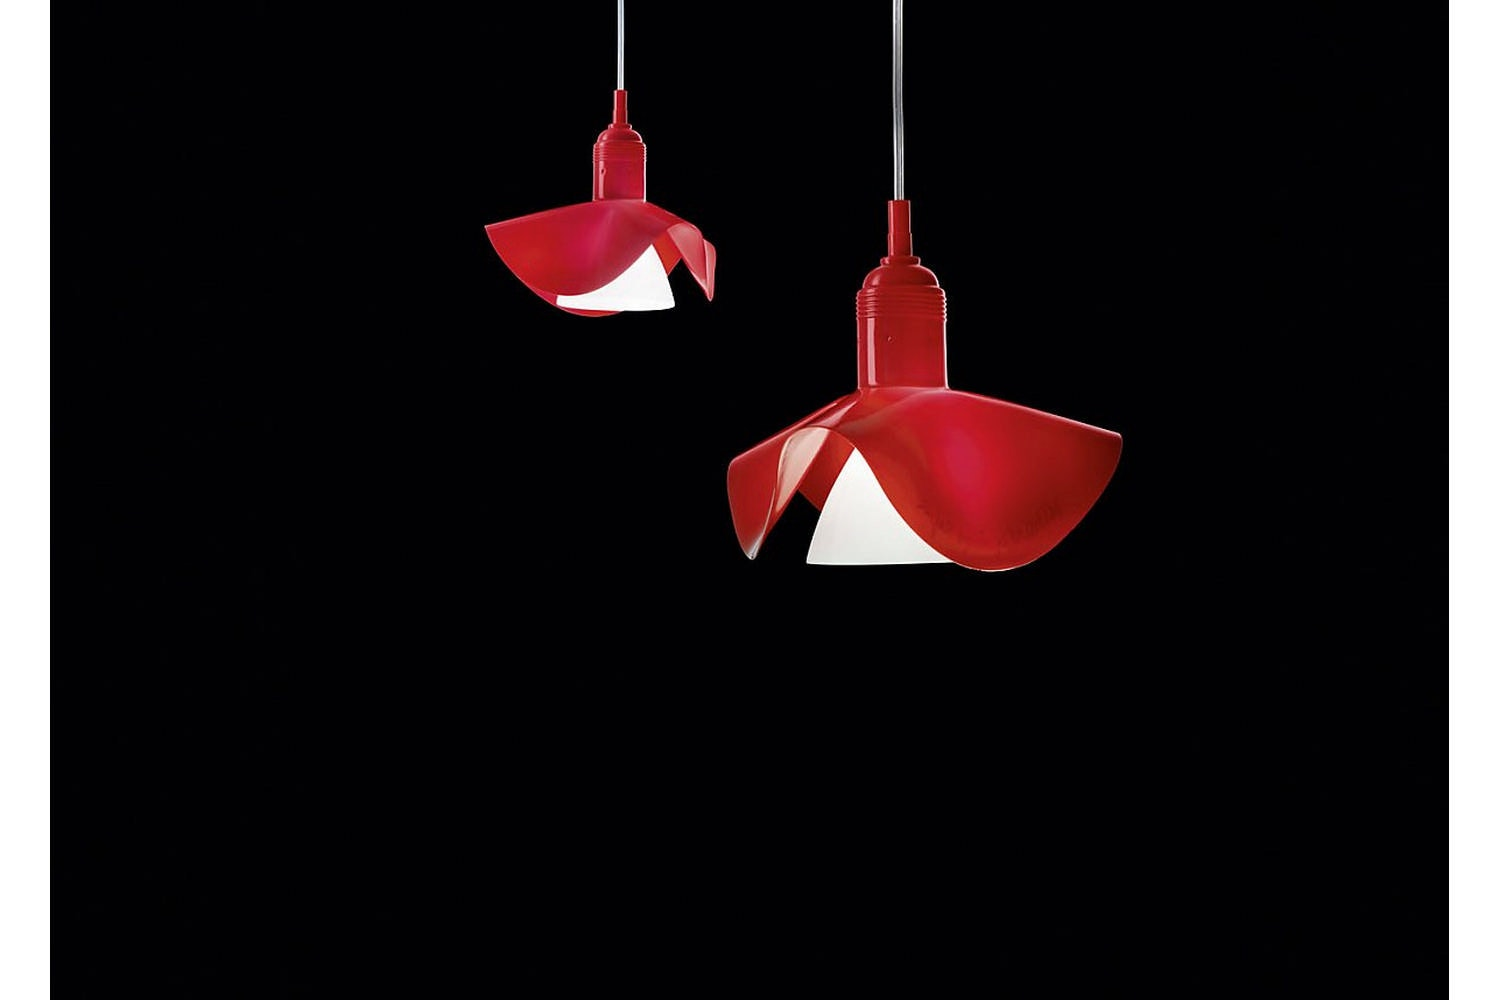 Silly-Kon Suspension Lamp by Ingo Maurer und Team for Ingo Maurer